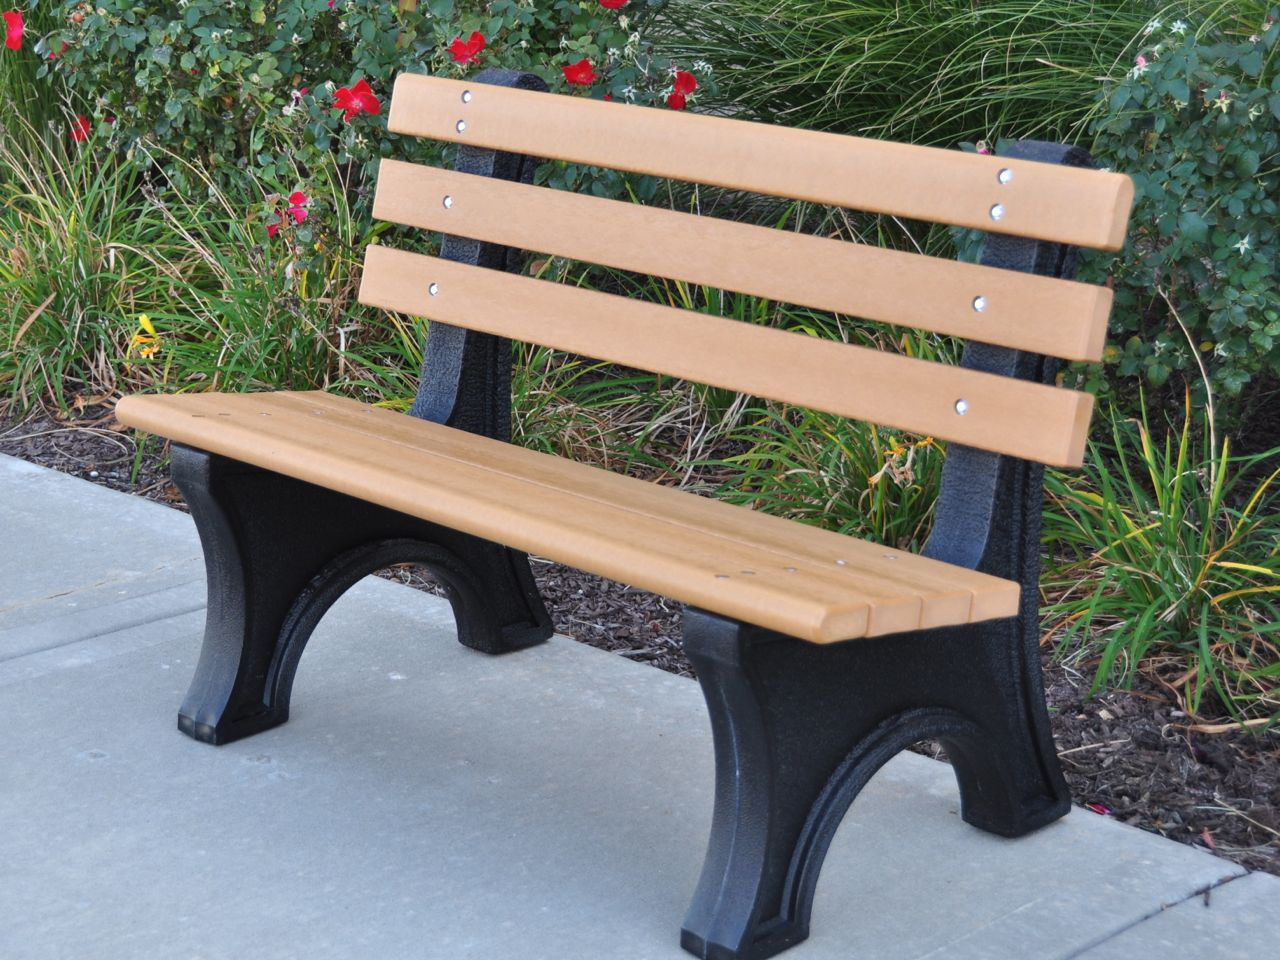 comfort park avenue bench by jayhawk plastics - outdoor benches for parks DTXMBBF